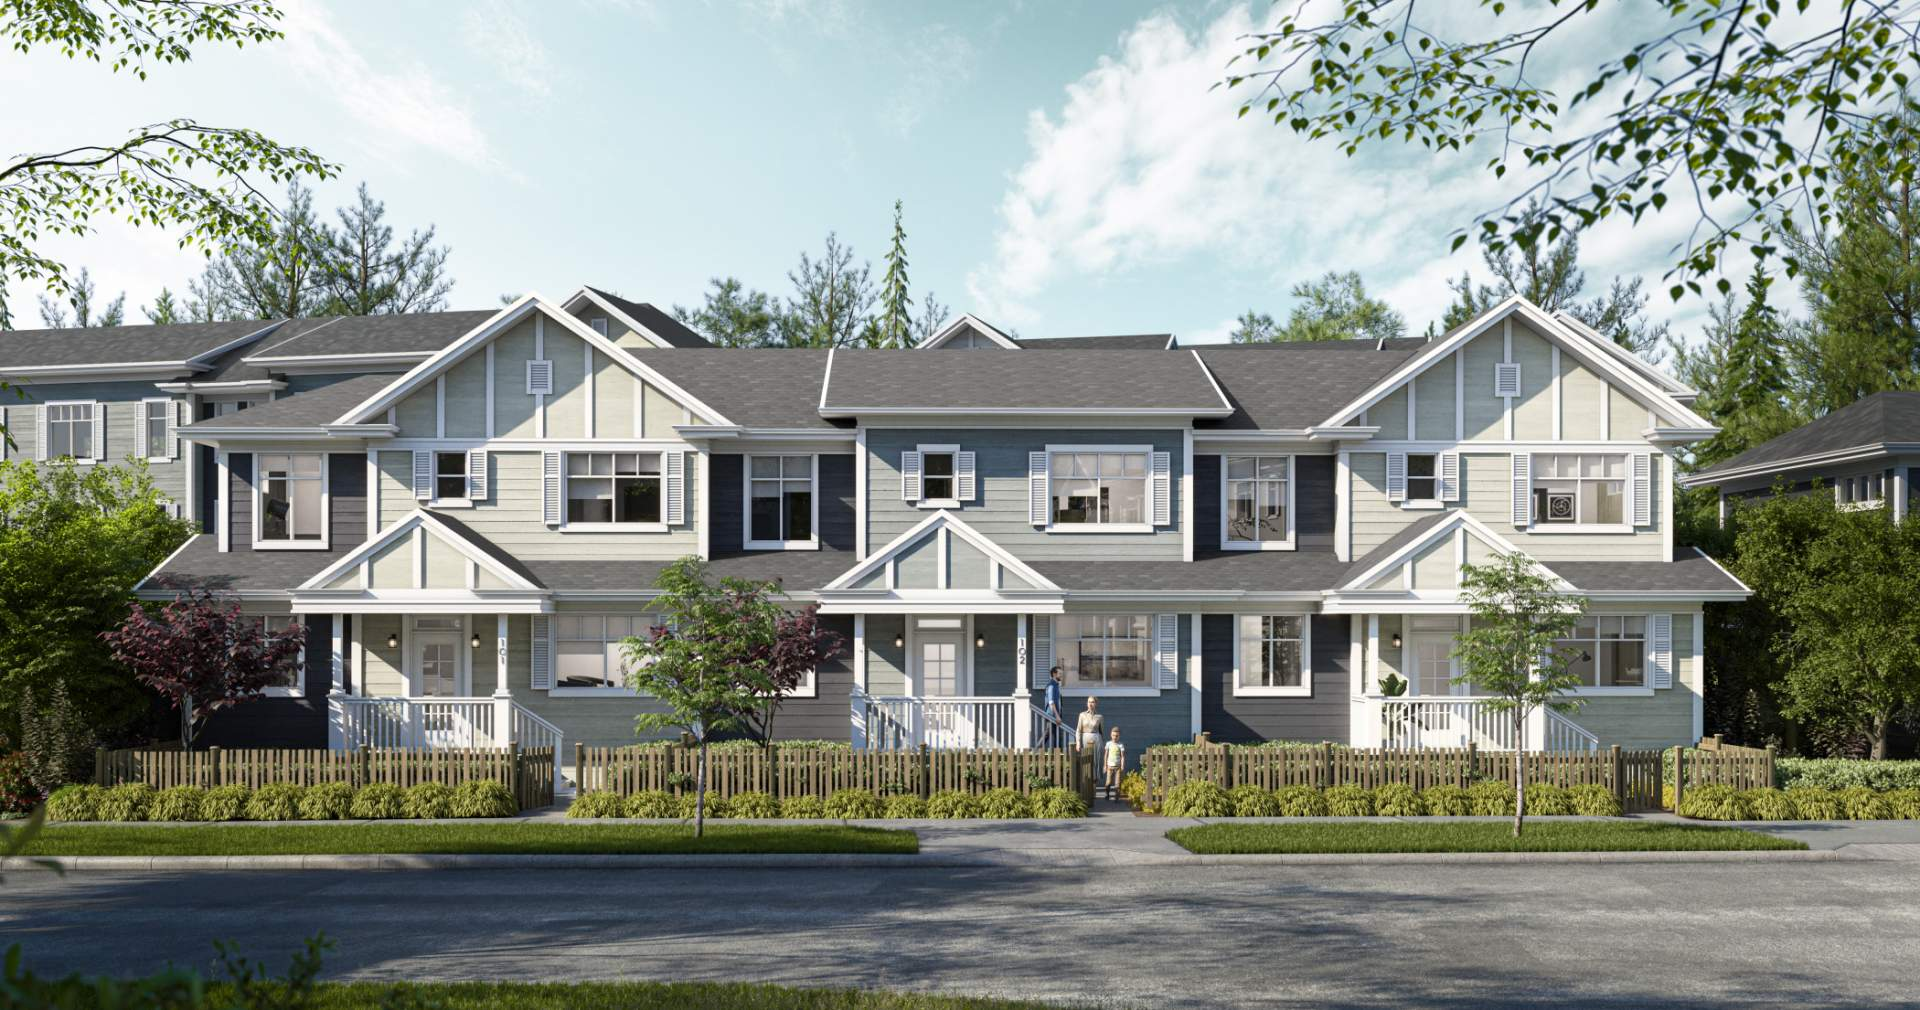 Baycrest On The Rise By Woodbridge Homes – Plans, Prices, Availability